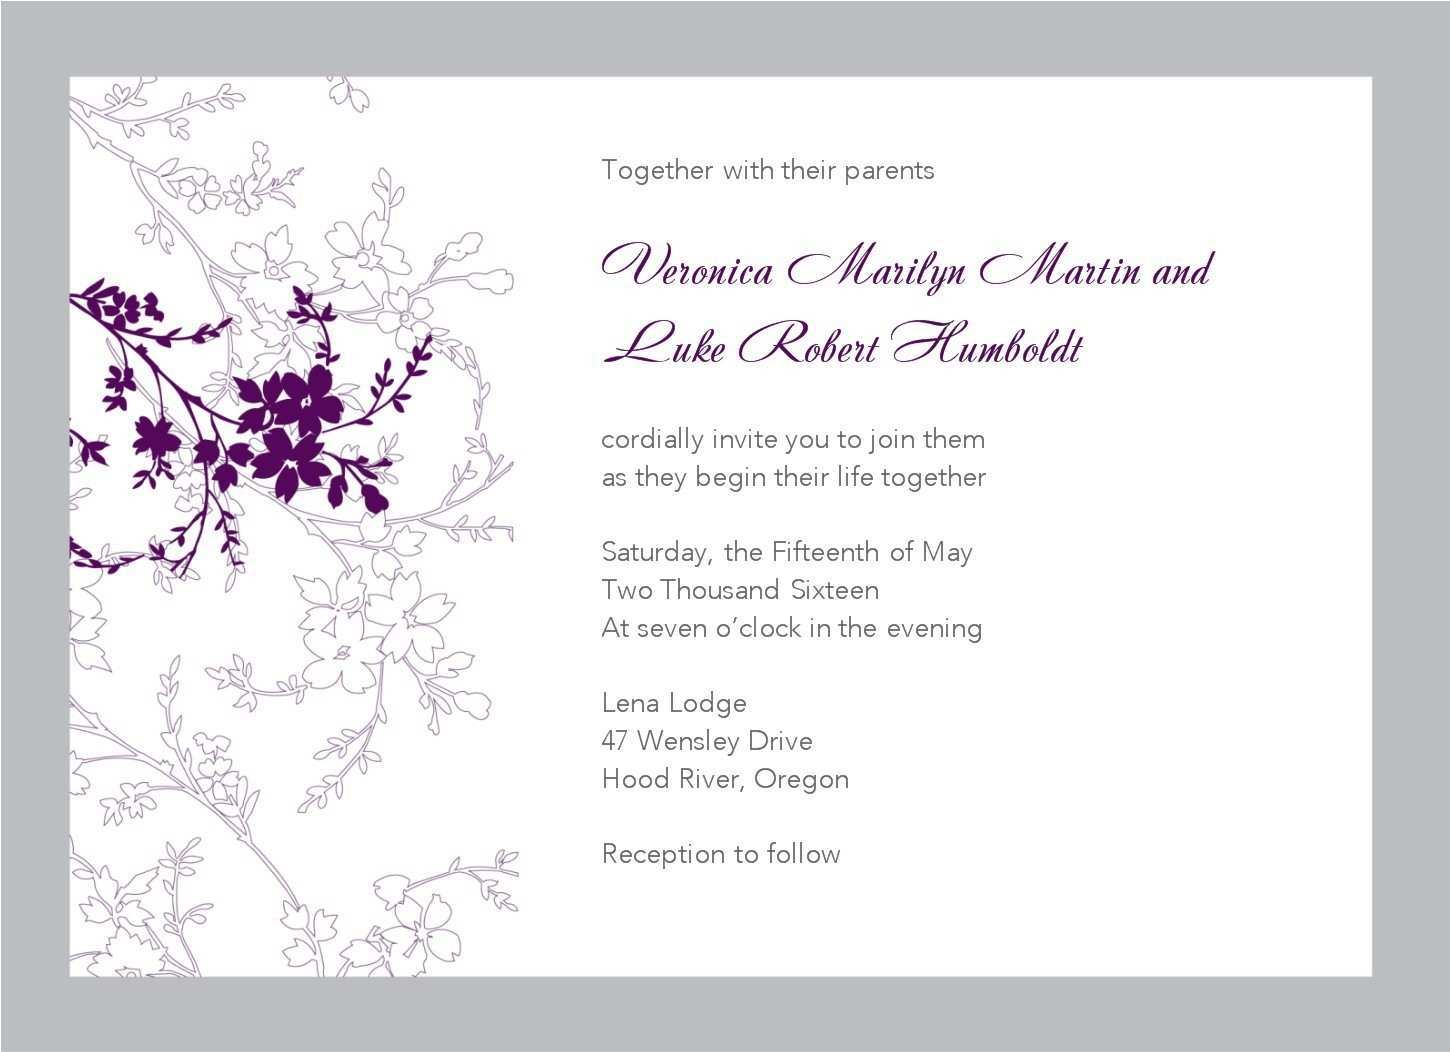 Invitation Template Free Download from legaldbol.com